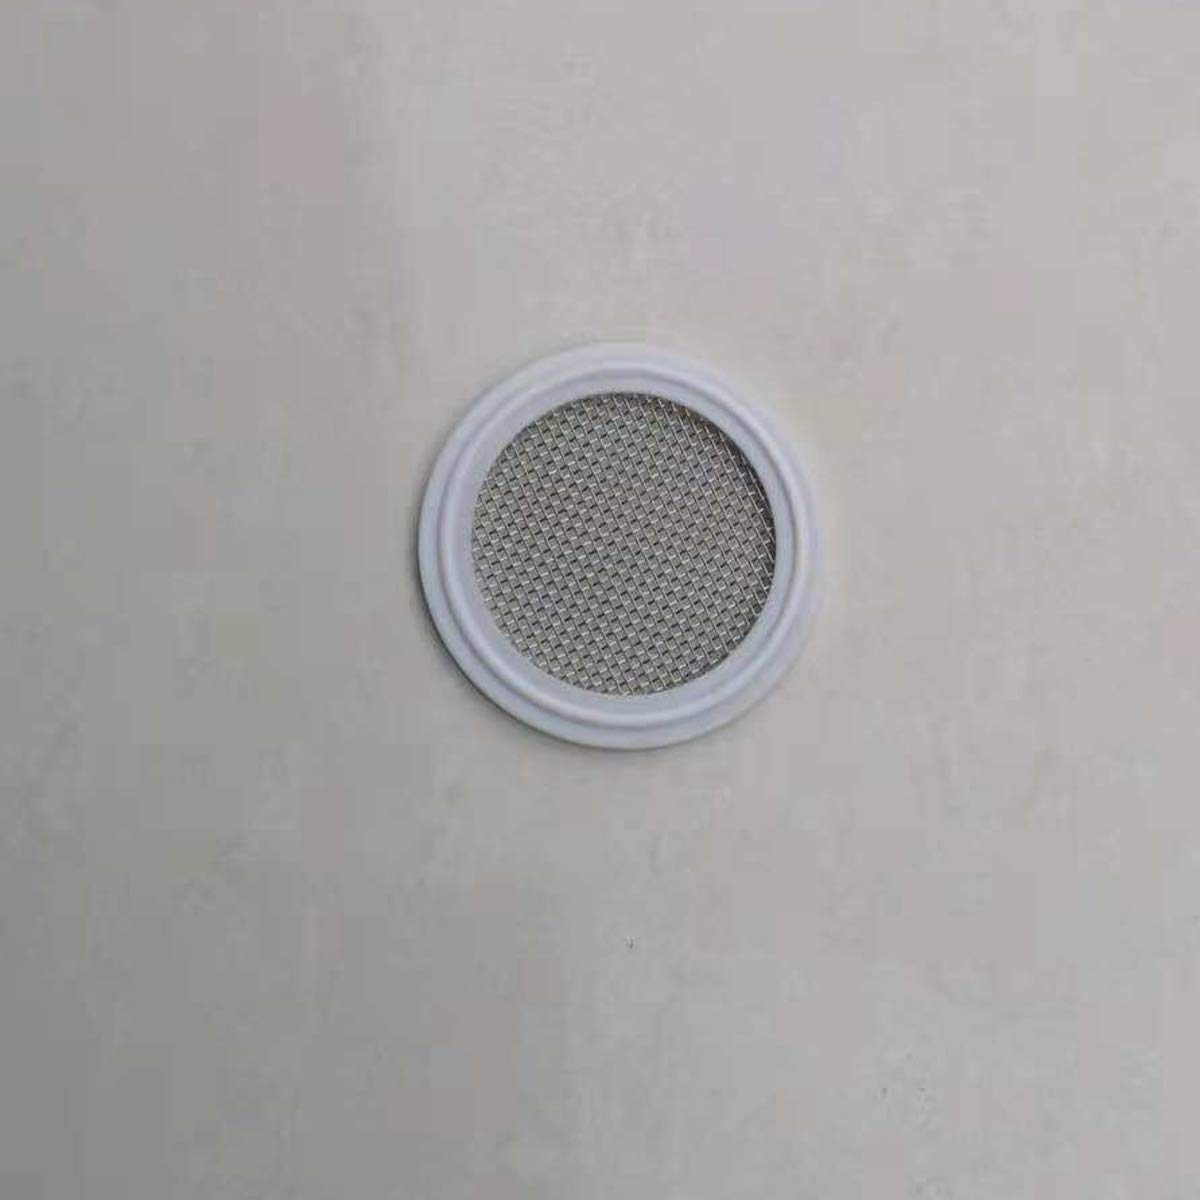 2 PTFE Sanitary Gasket with Stainless Steel Screen 16 Mesh